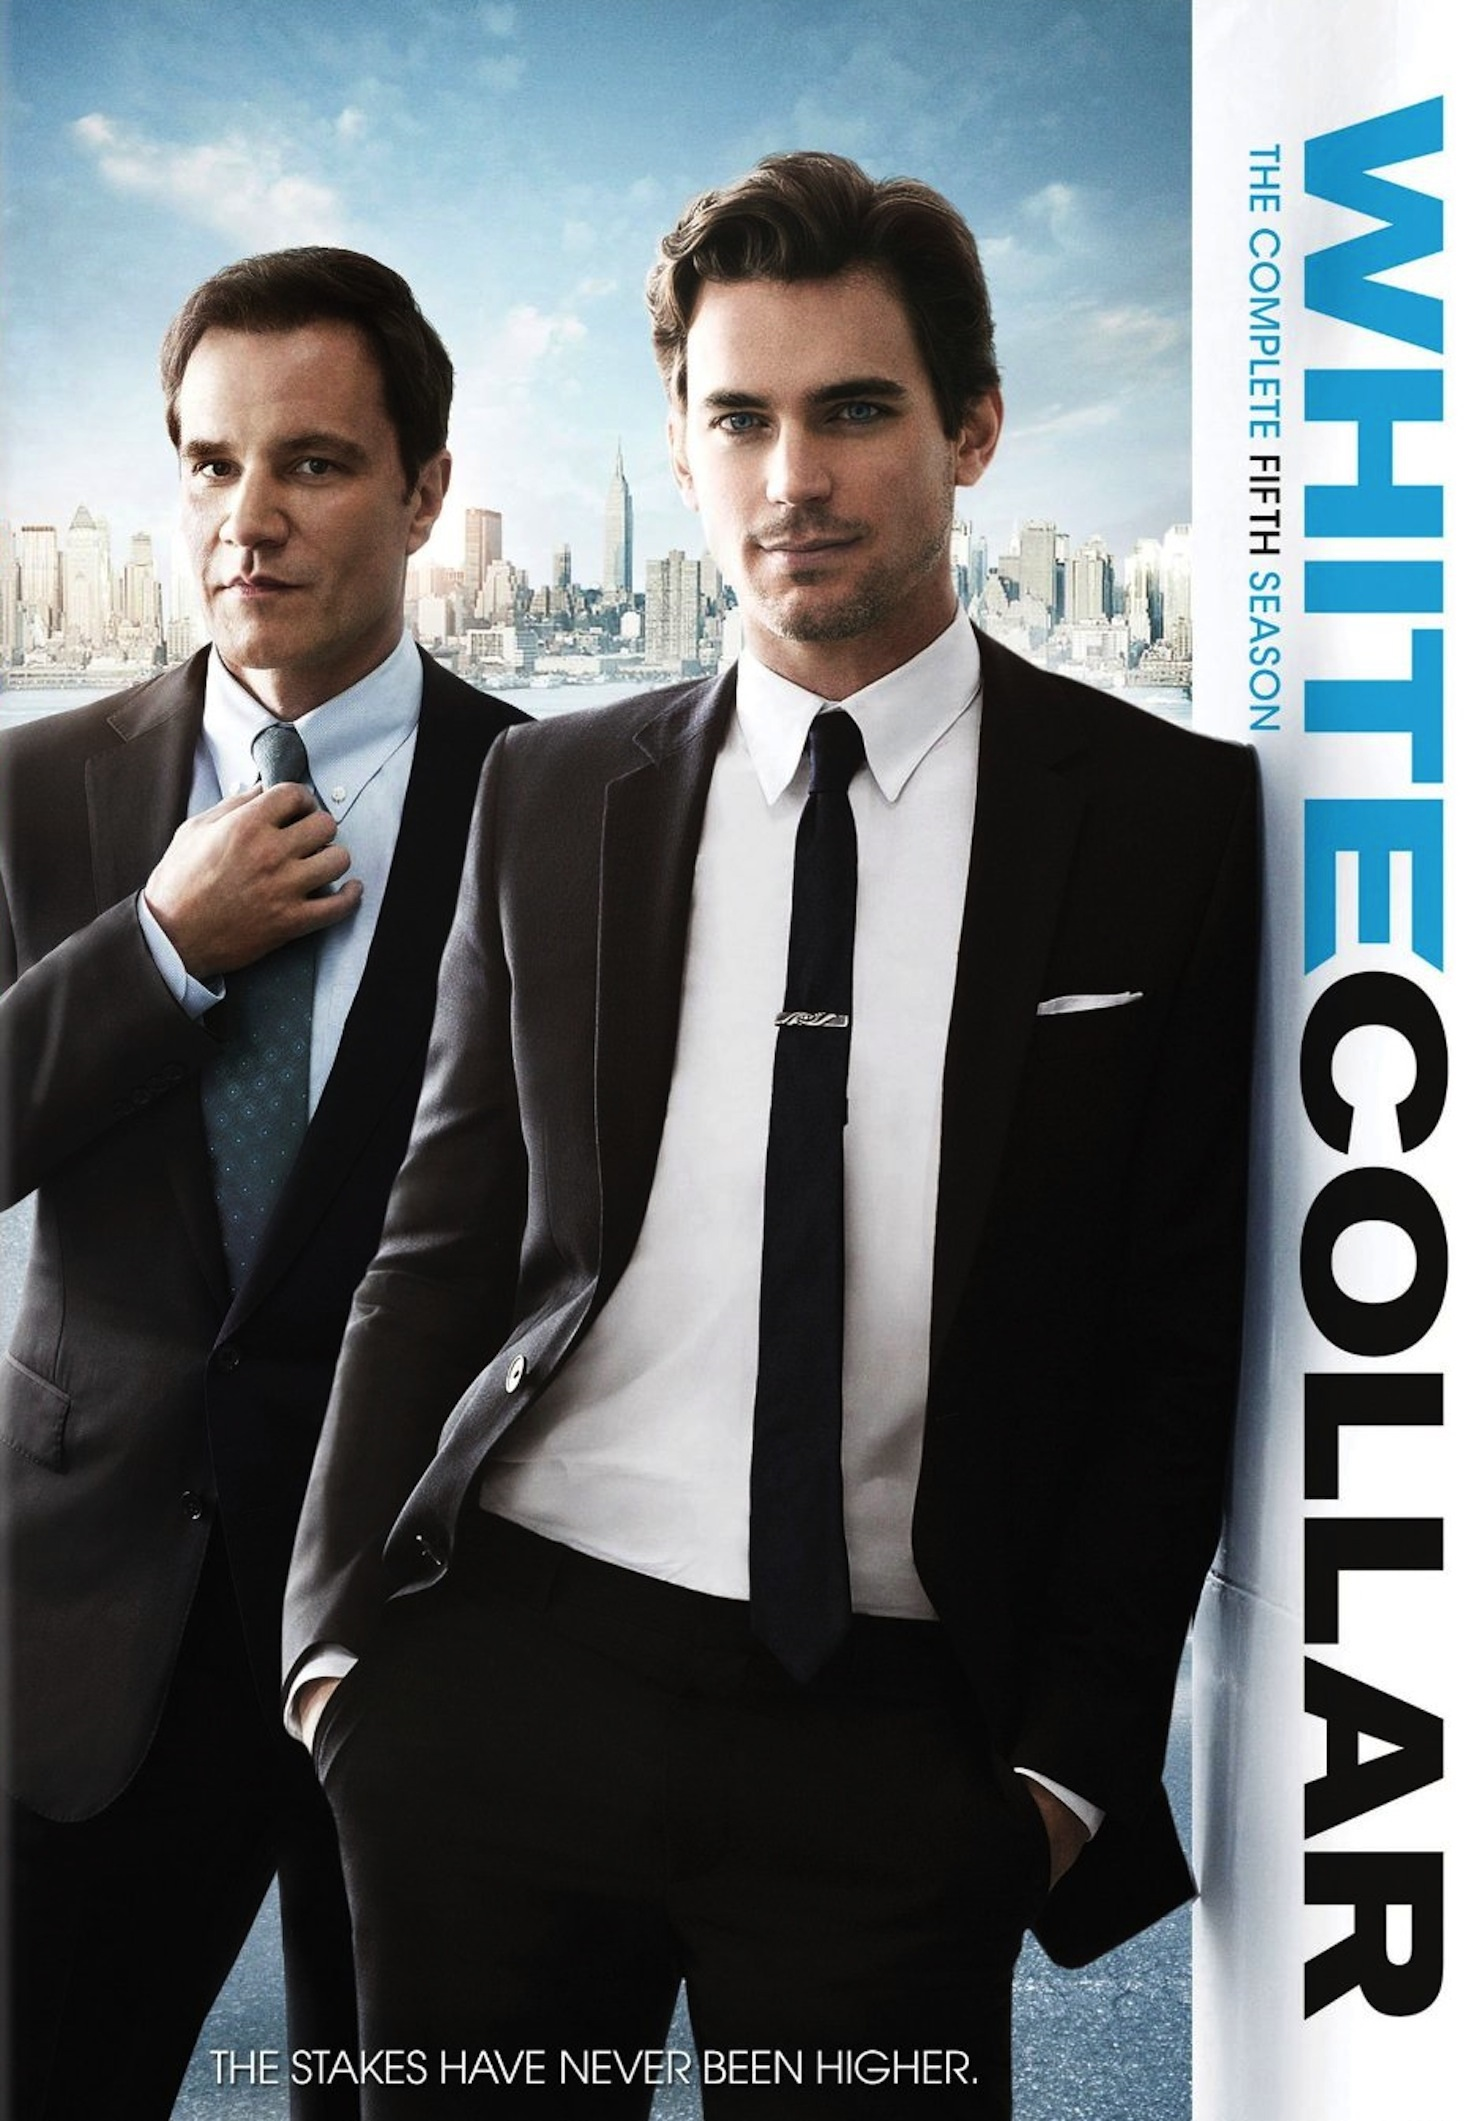 Download White Collar series for iPod/iPhone/iPad in hd